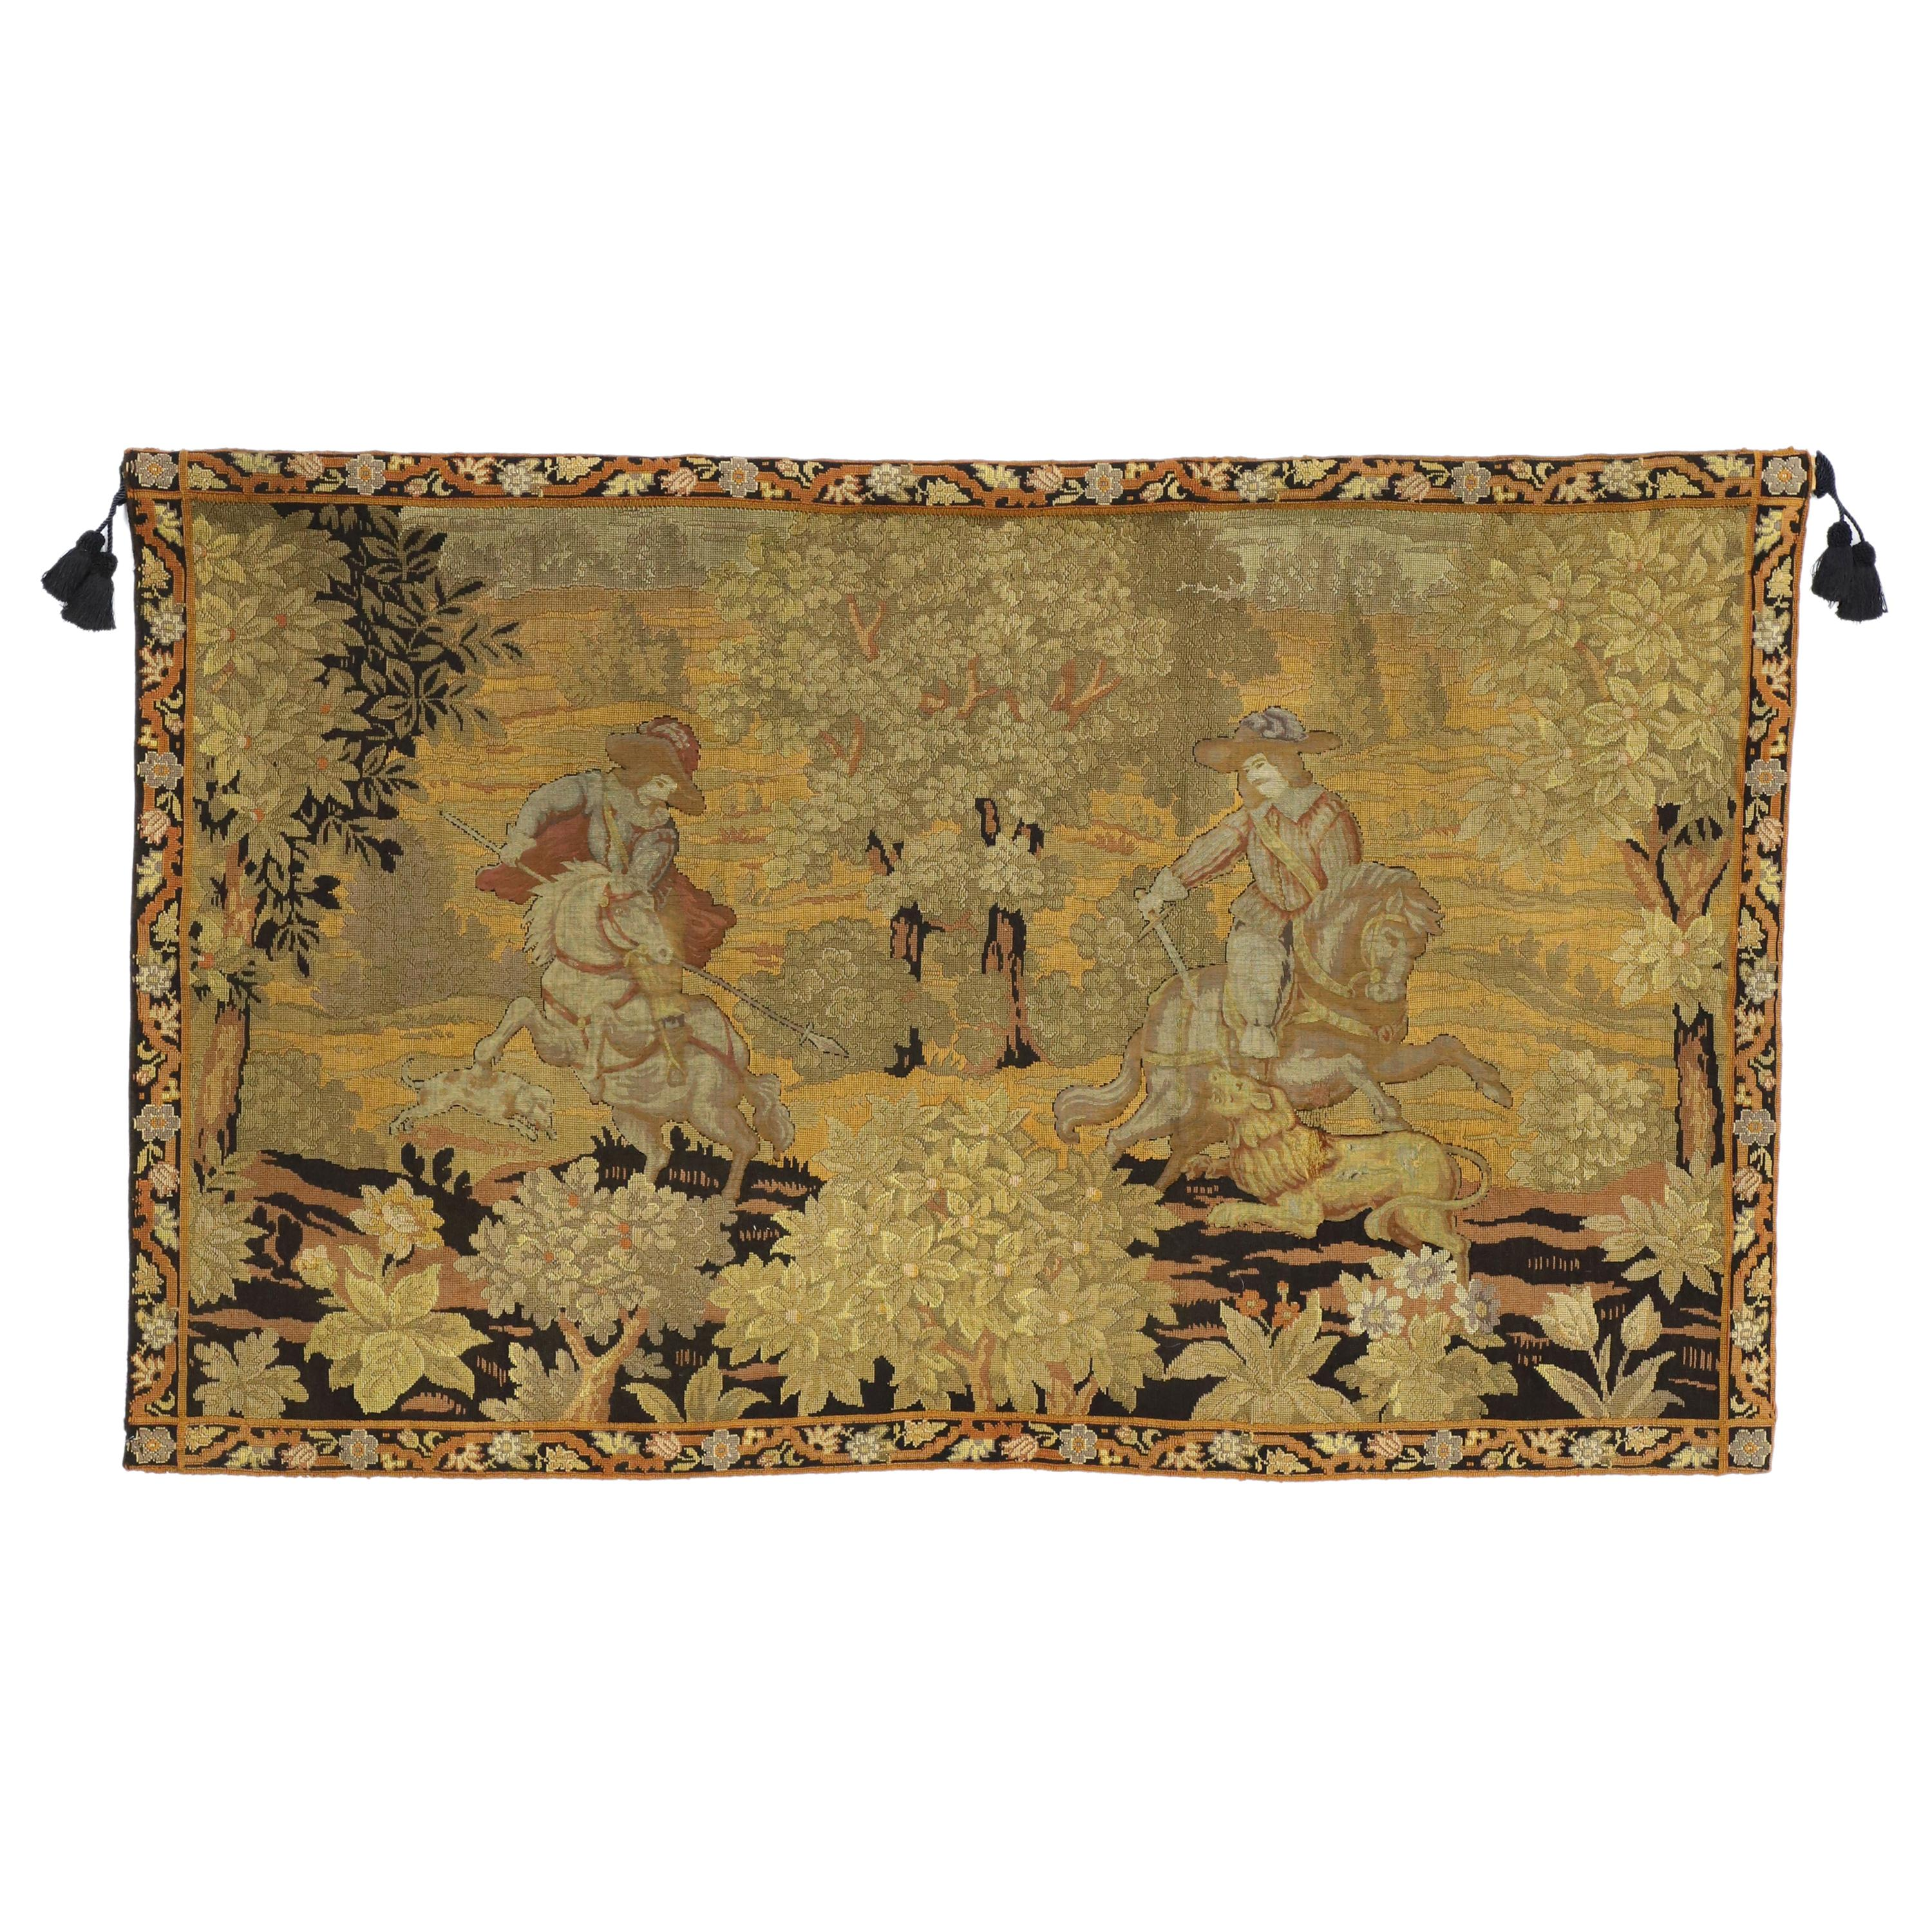 Antique English Tapestry with Medieval Hunting Scene, Wall Hanging